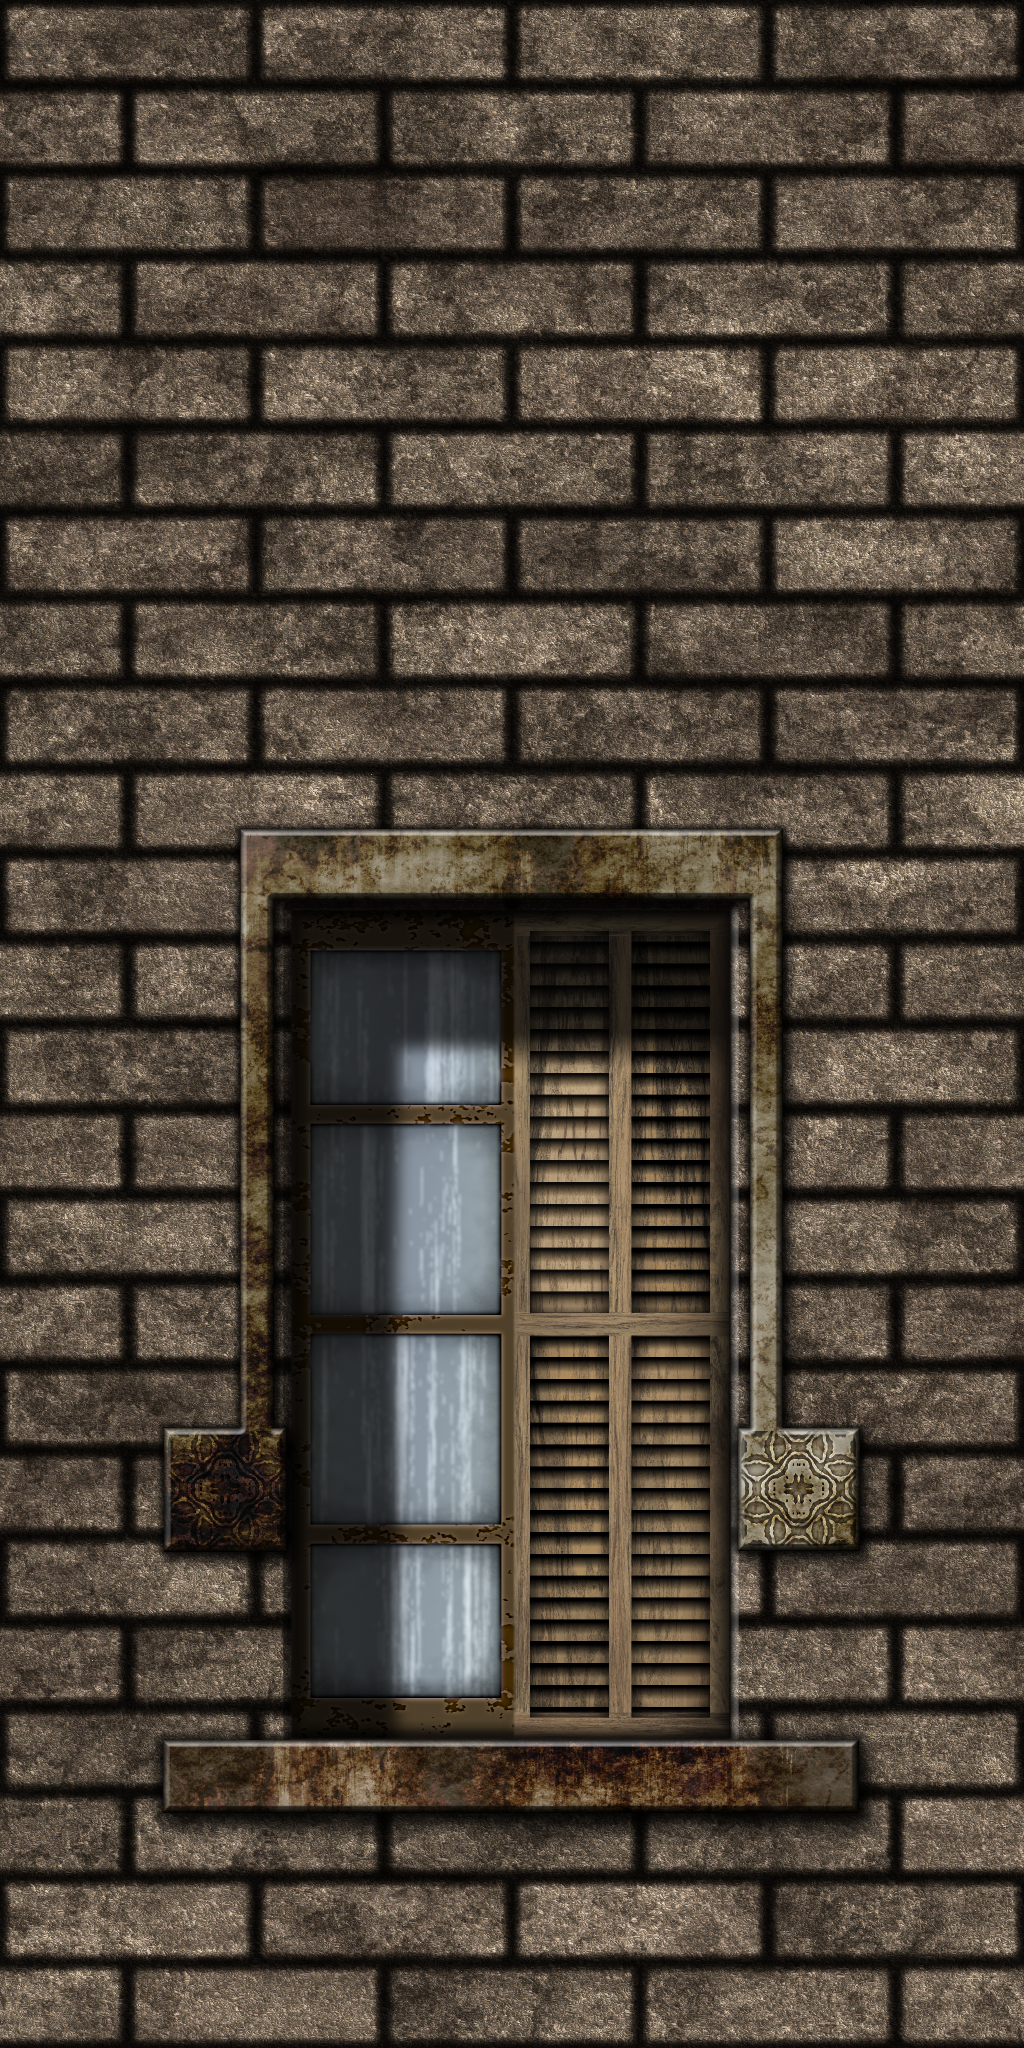 Small Brown Bricks w/Window by Hoover1979